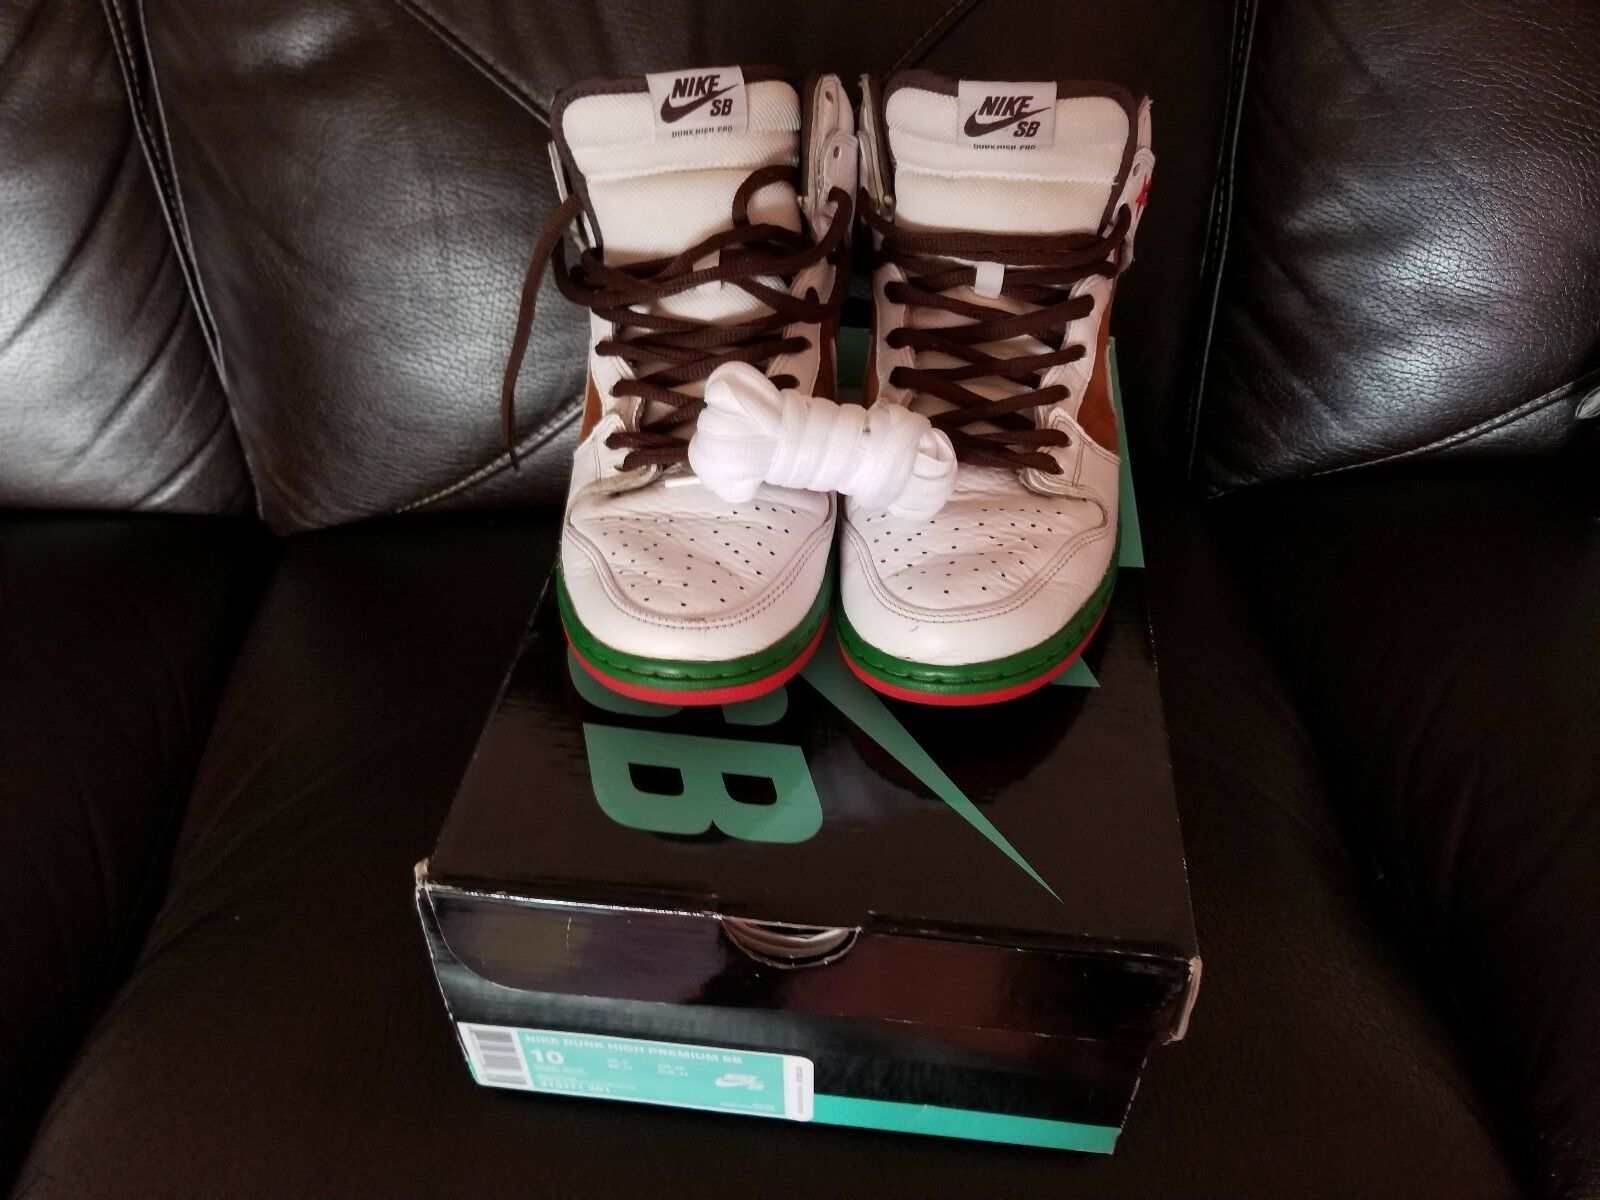 Nike Sb Dunk High Cali size 10 Used Good Condition